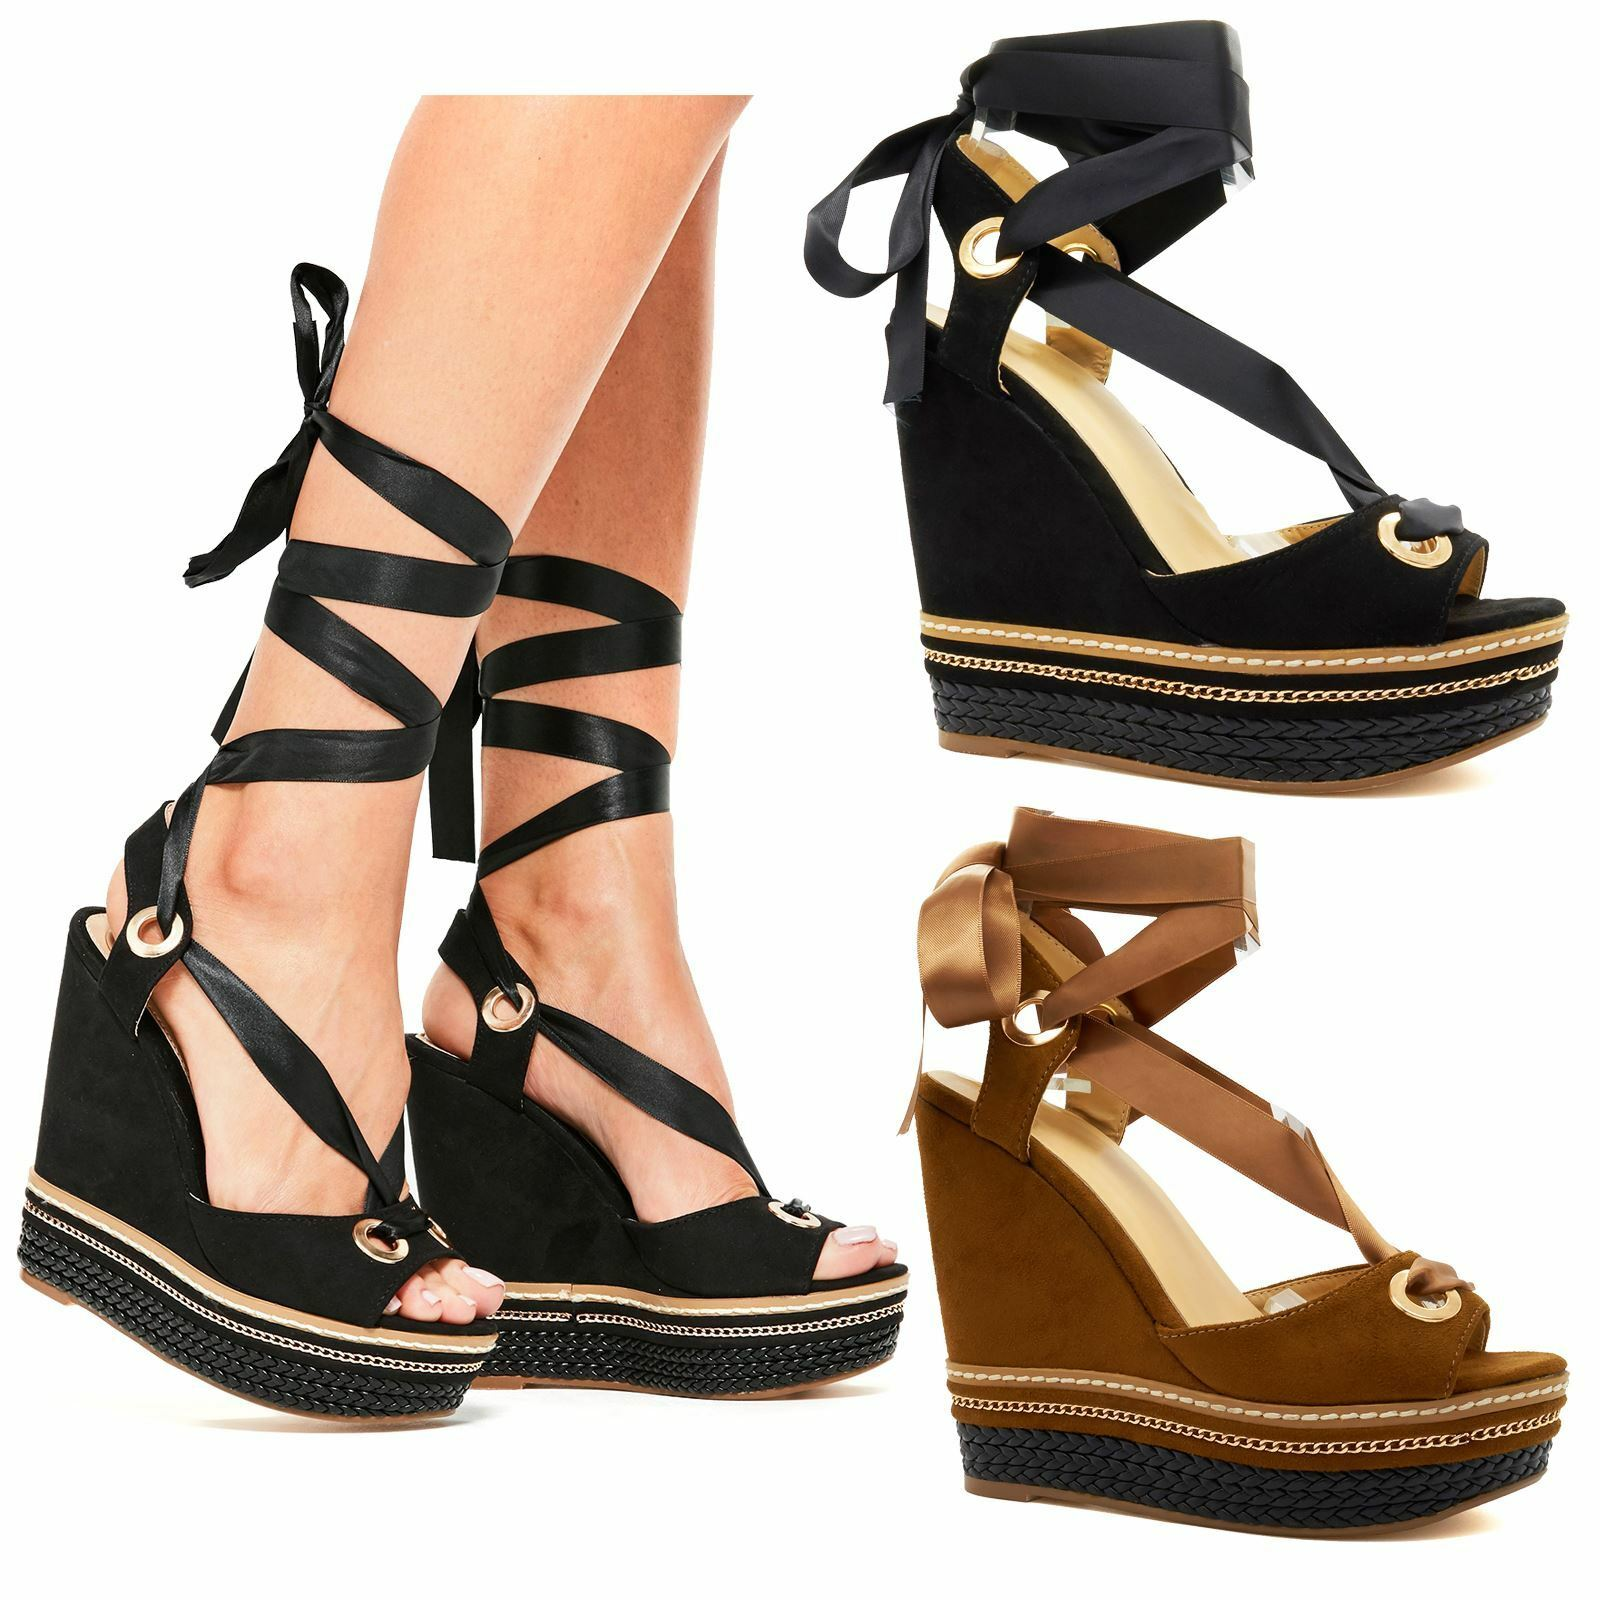 New Womens High Wedge Heel Platform Sandals Ankle Strap Summer Espadrilles Size